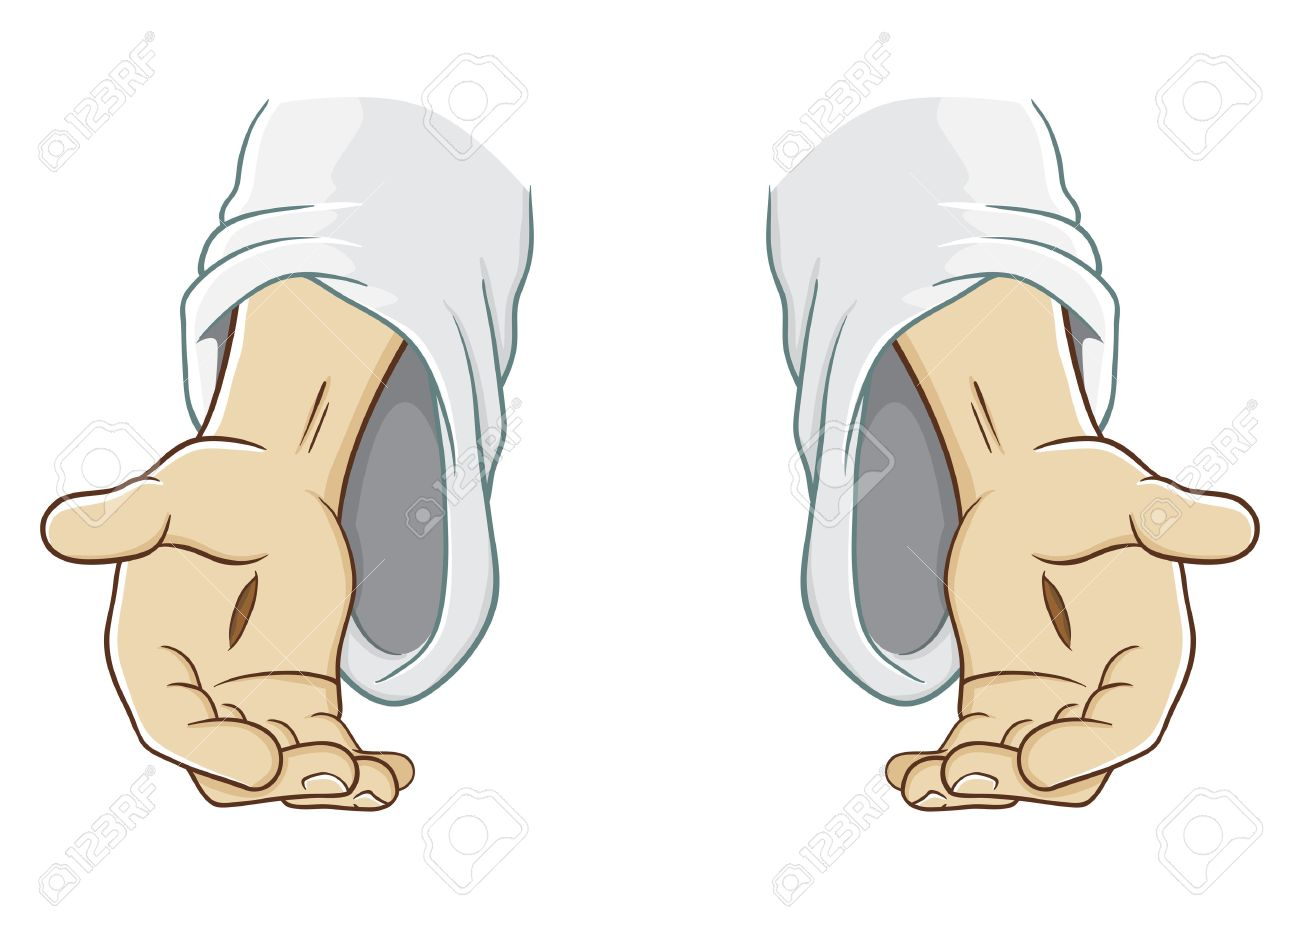 hight resolution of jesus christ hand reaching out illustration stock vector 52544833